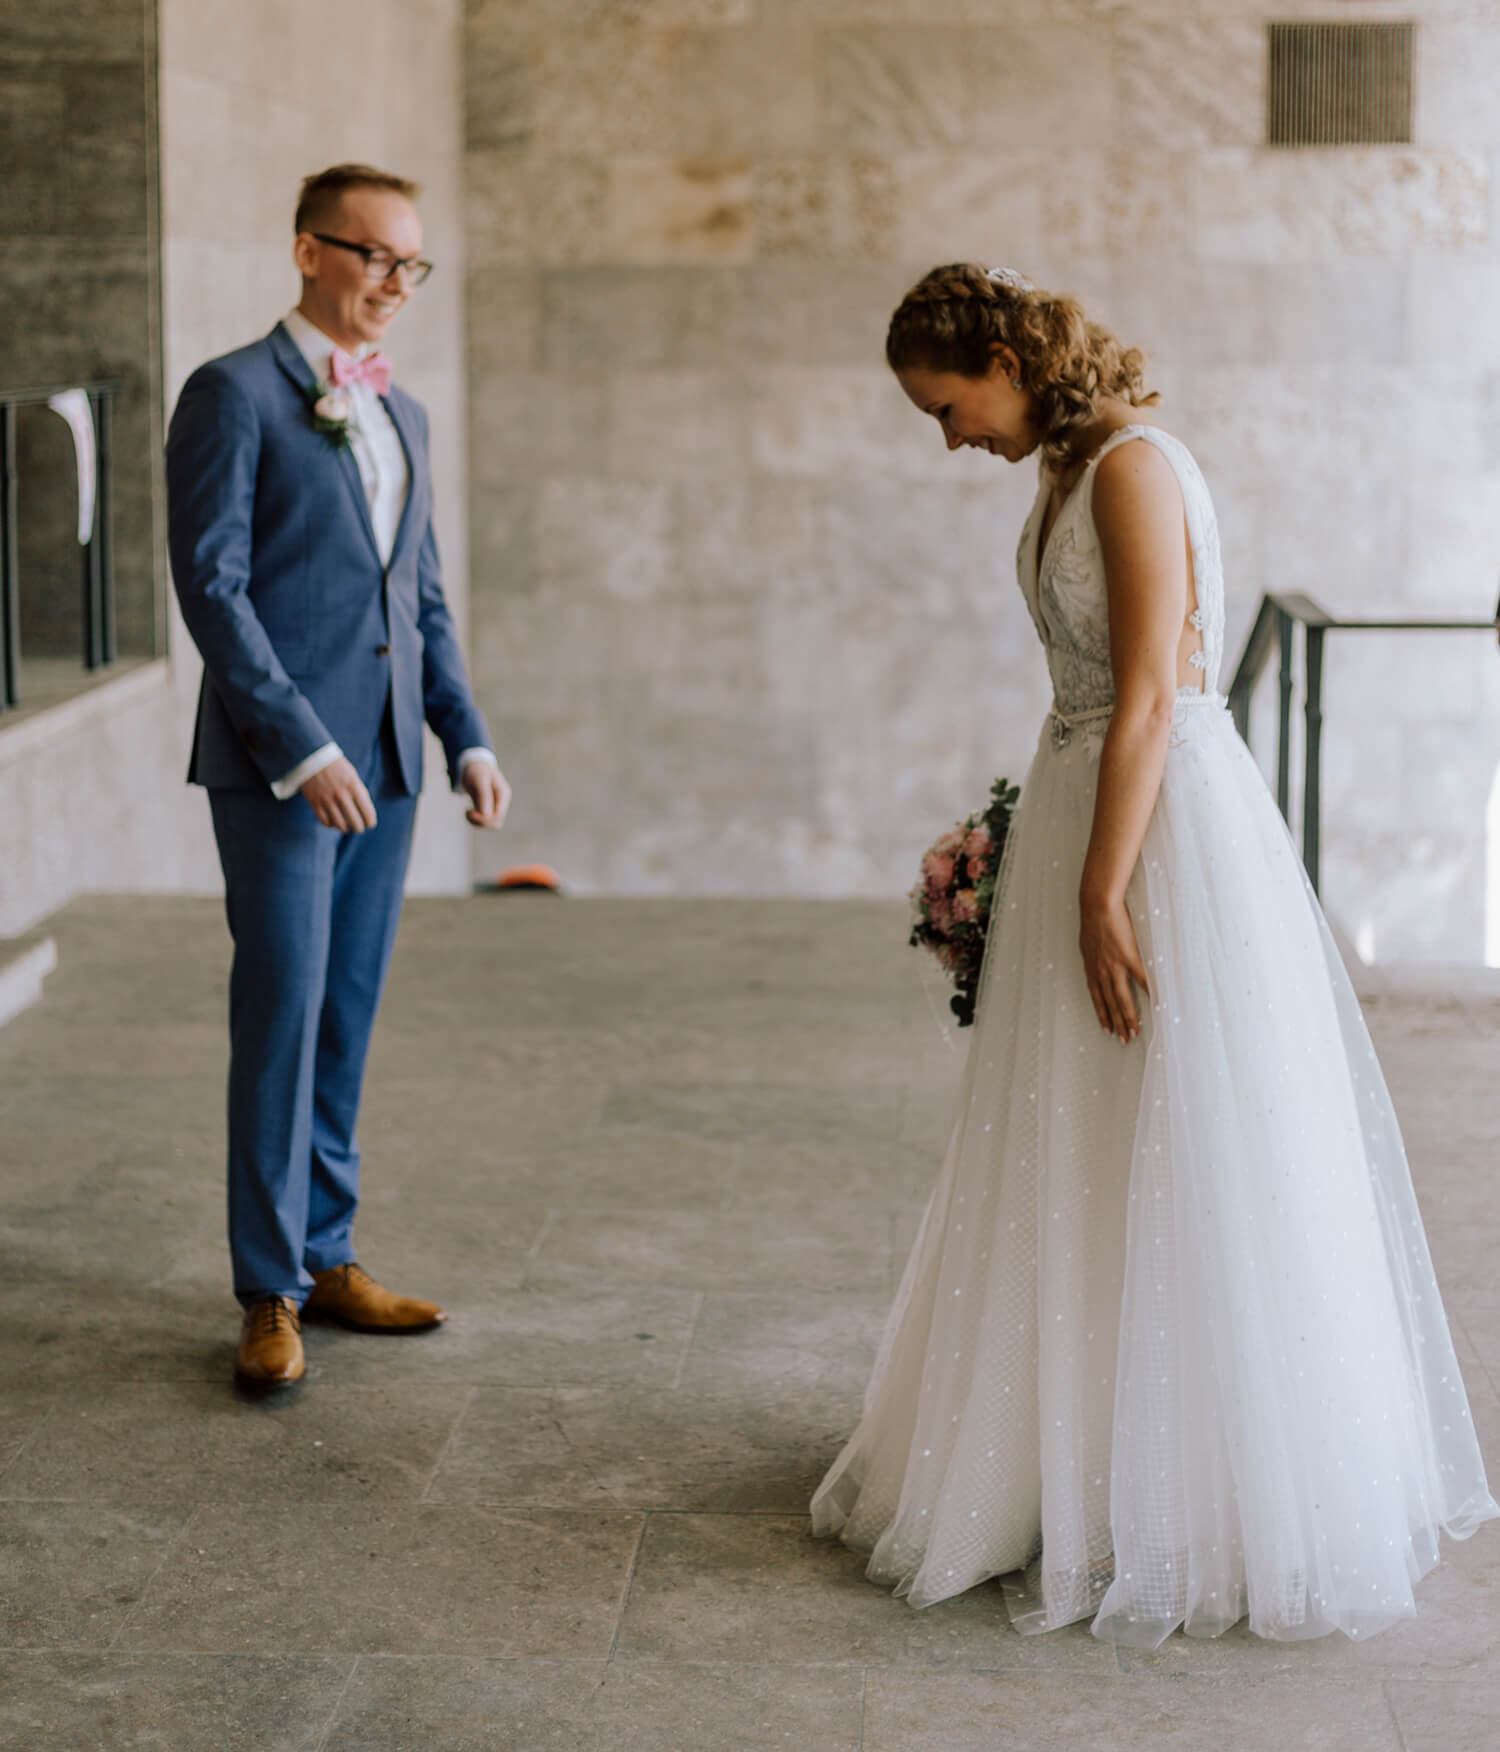 Wedding-Update-Our-First-Look-Weddingday-2018-Kationette-Bride-Fashionblogger-NRW